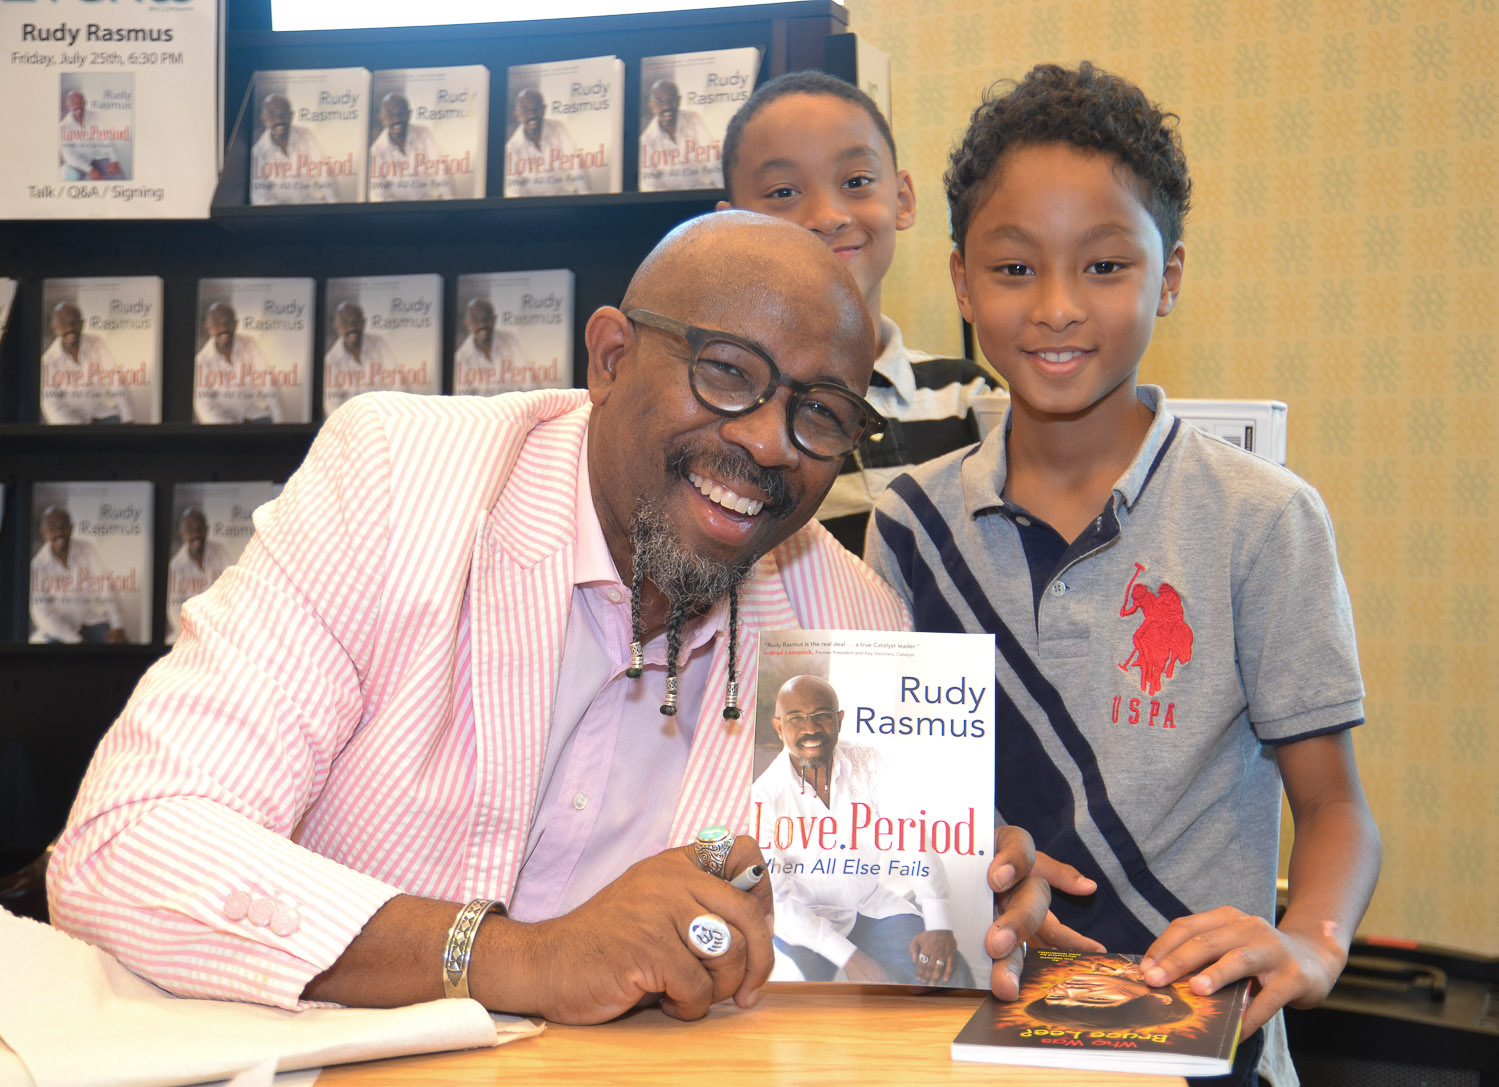 Paster Rudy book signing -0230.jpg